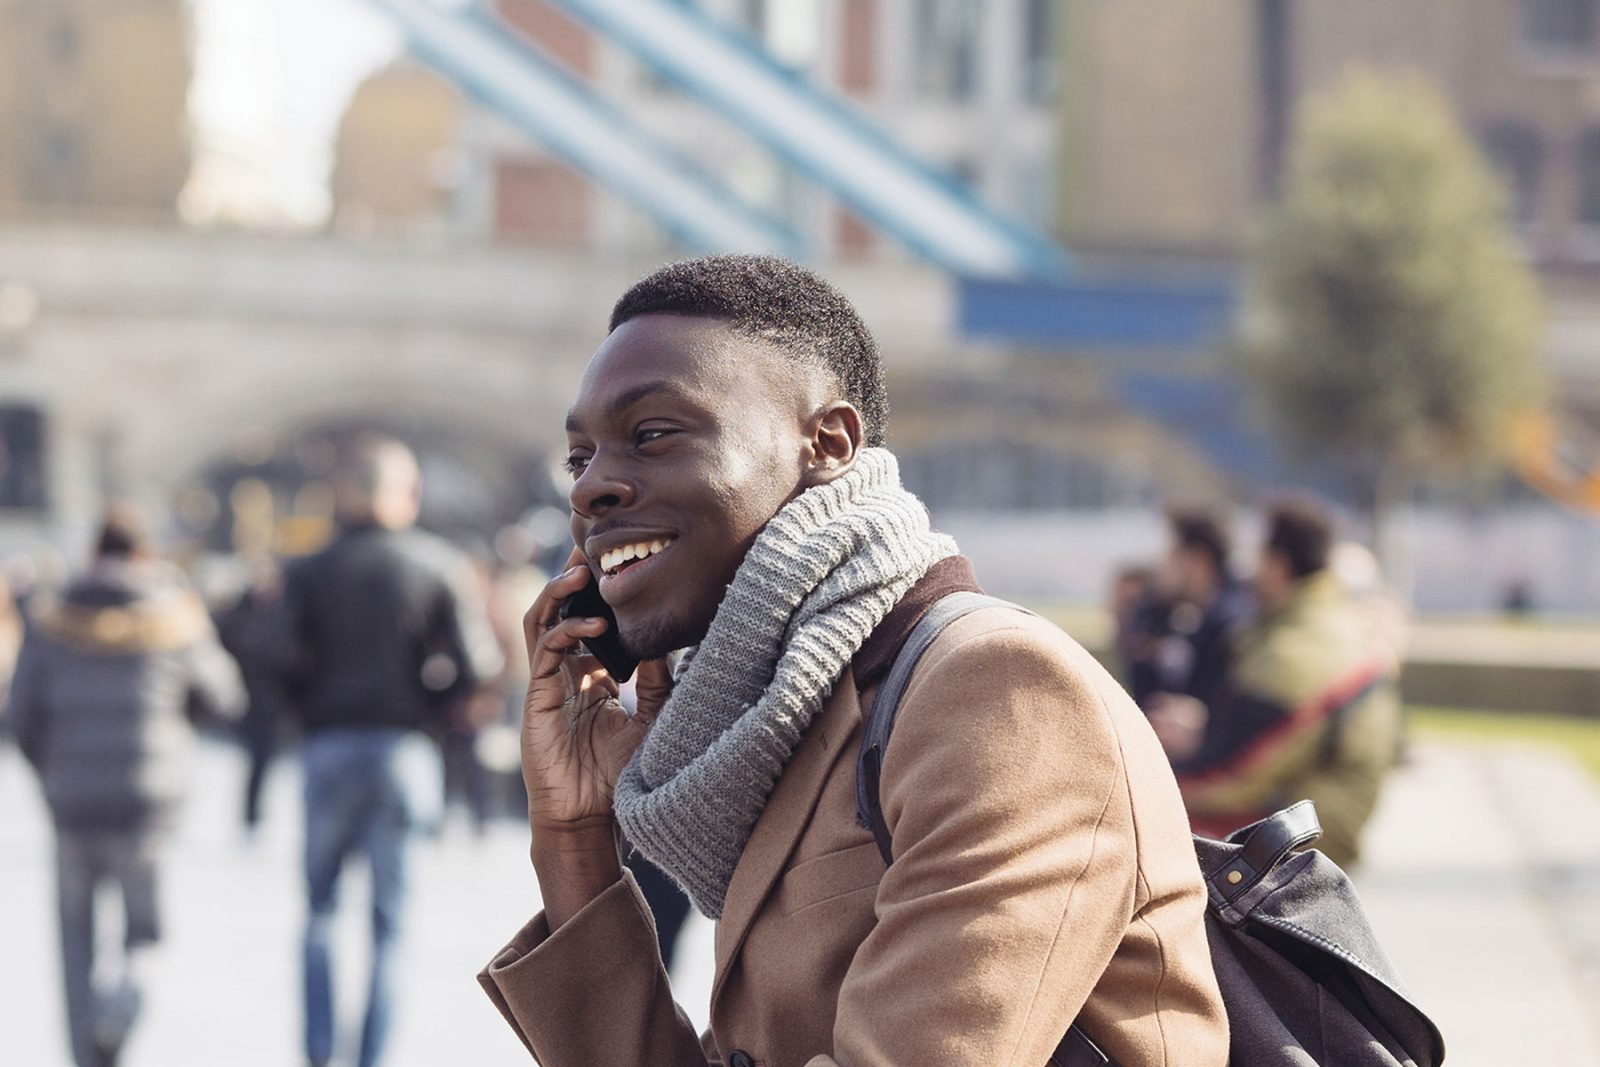 man on a  mobile phone